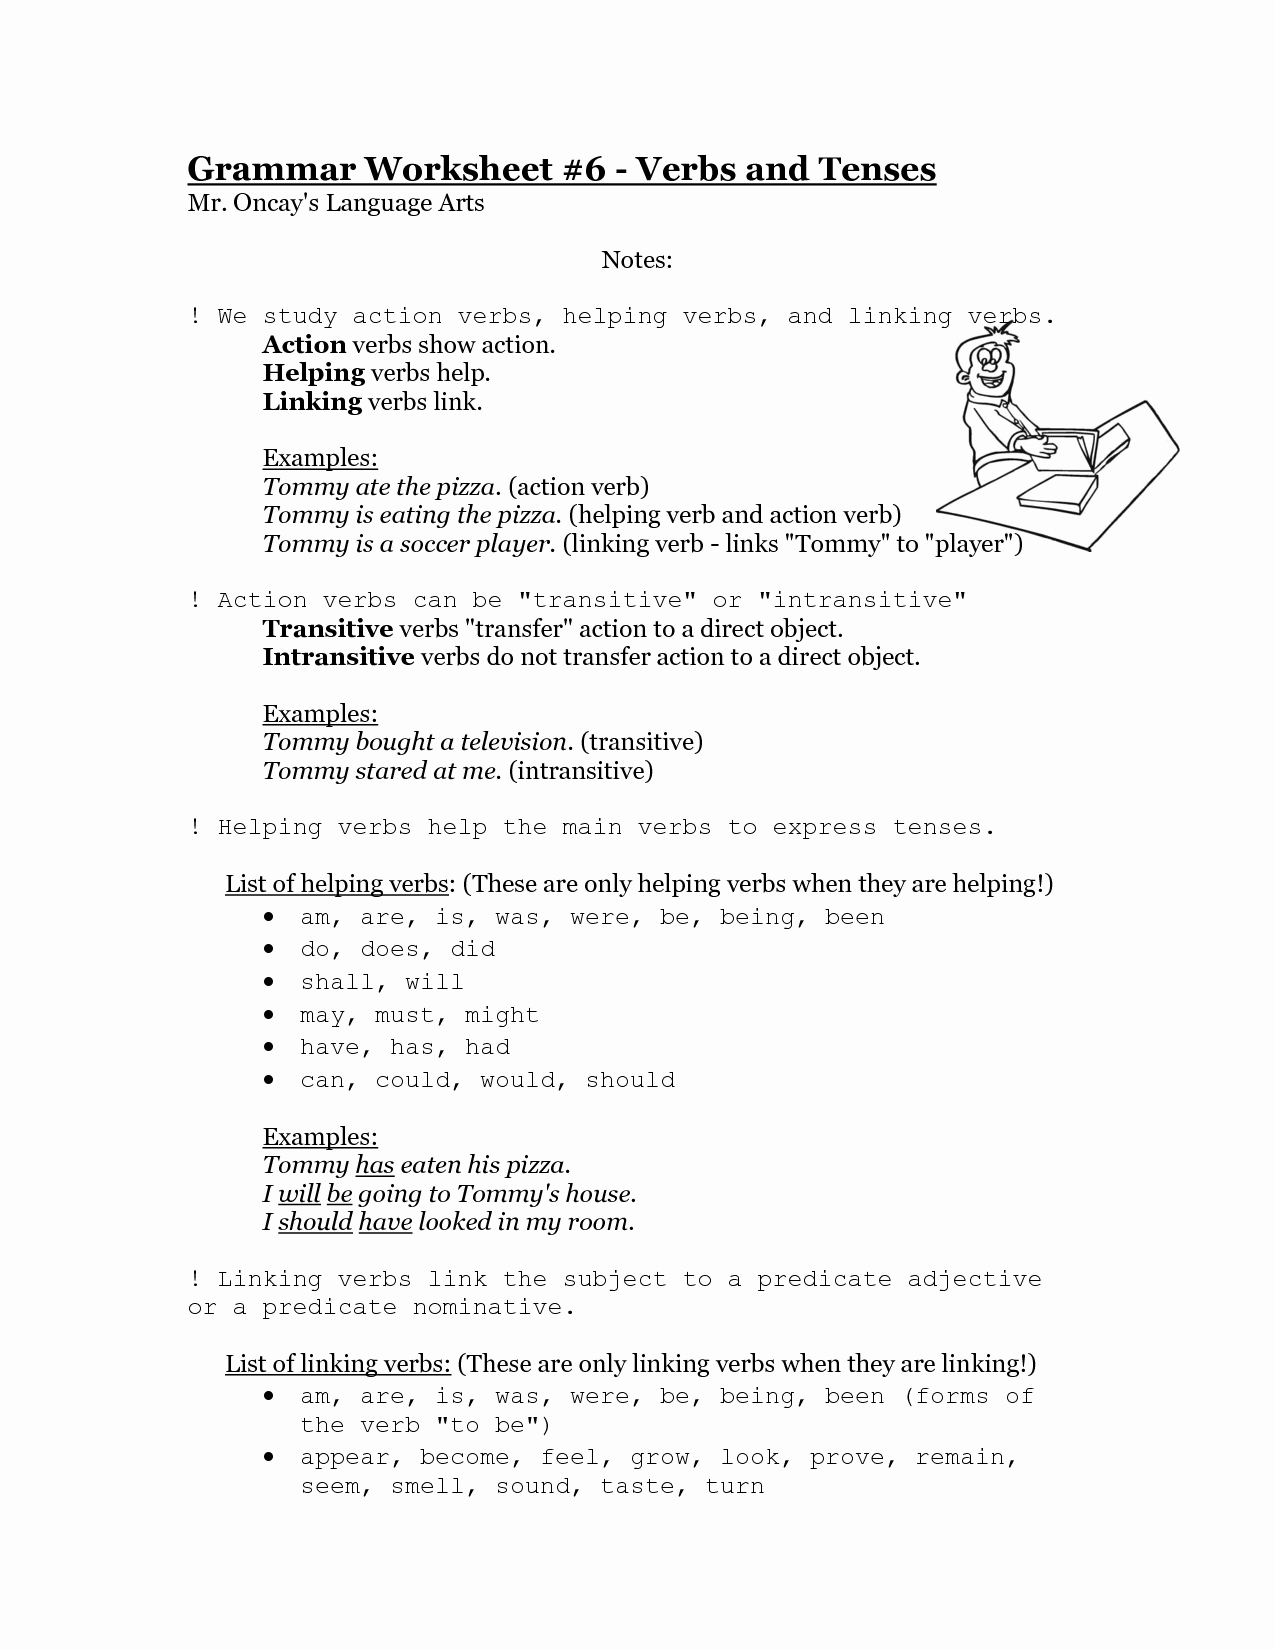 action verbs and linking verbs worksheets helping verbs